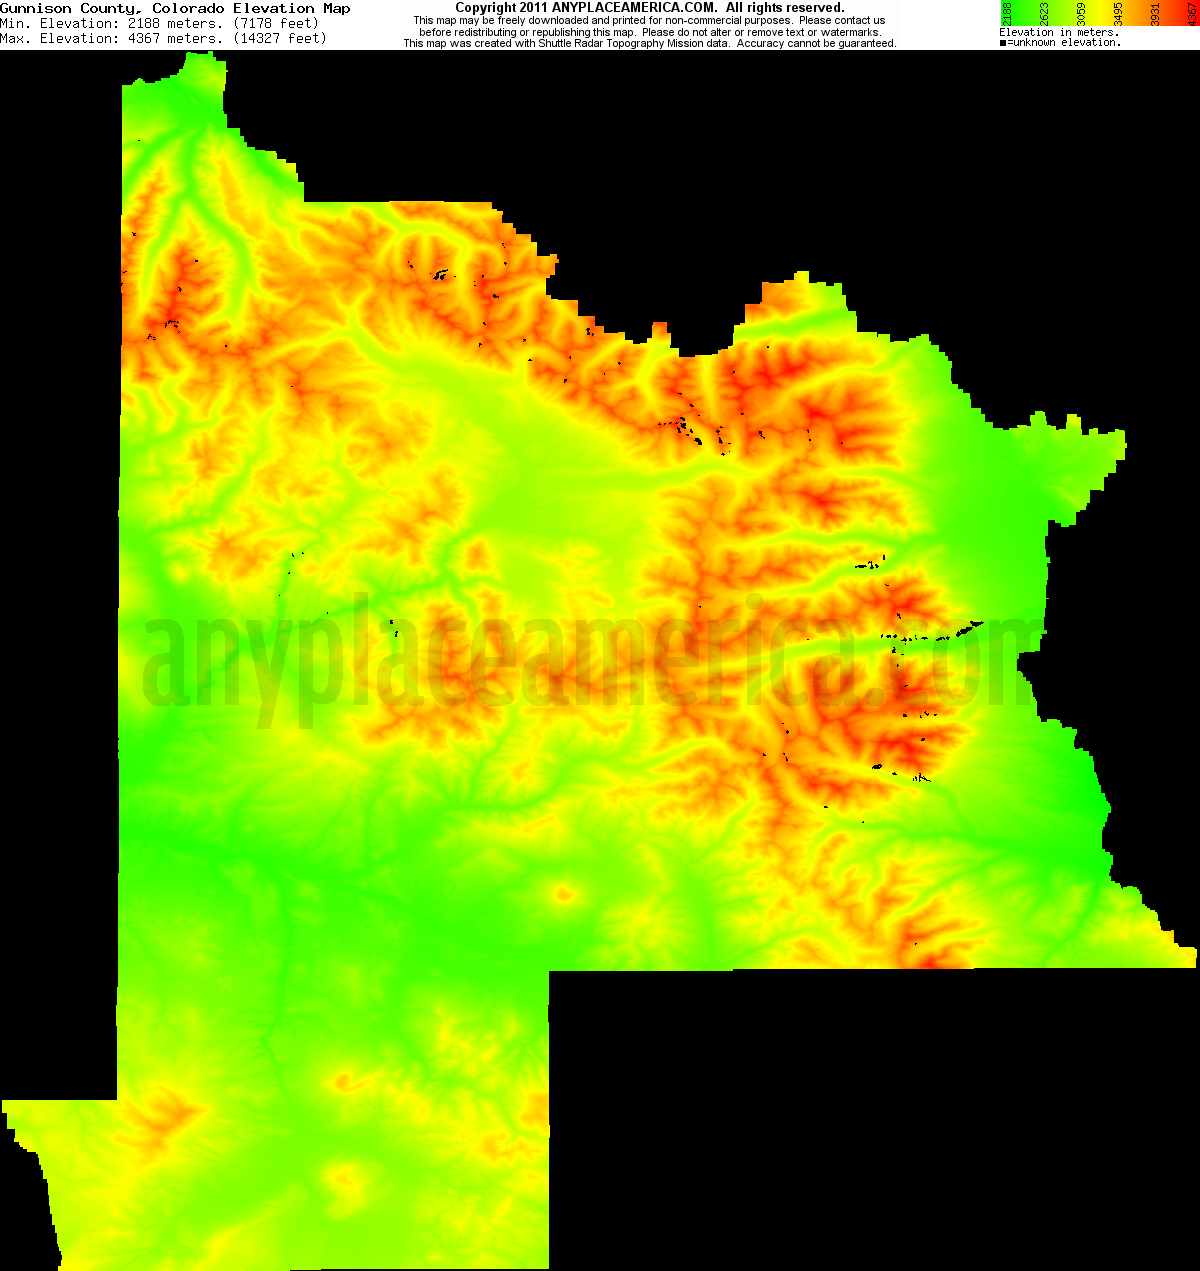 Colorado Elevation: Free Gunnison County, Colorado Topo Maps & Elevations